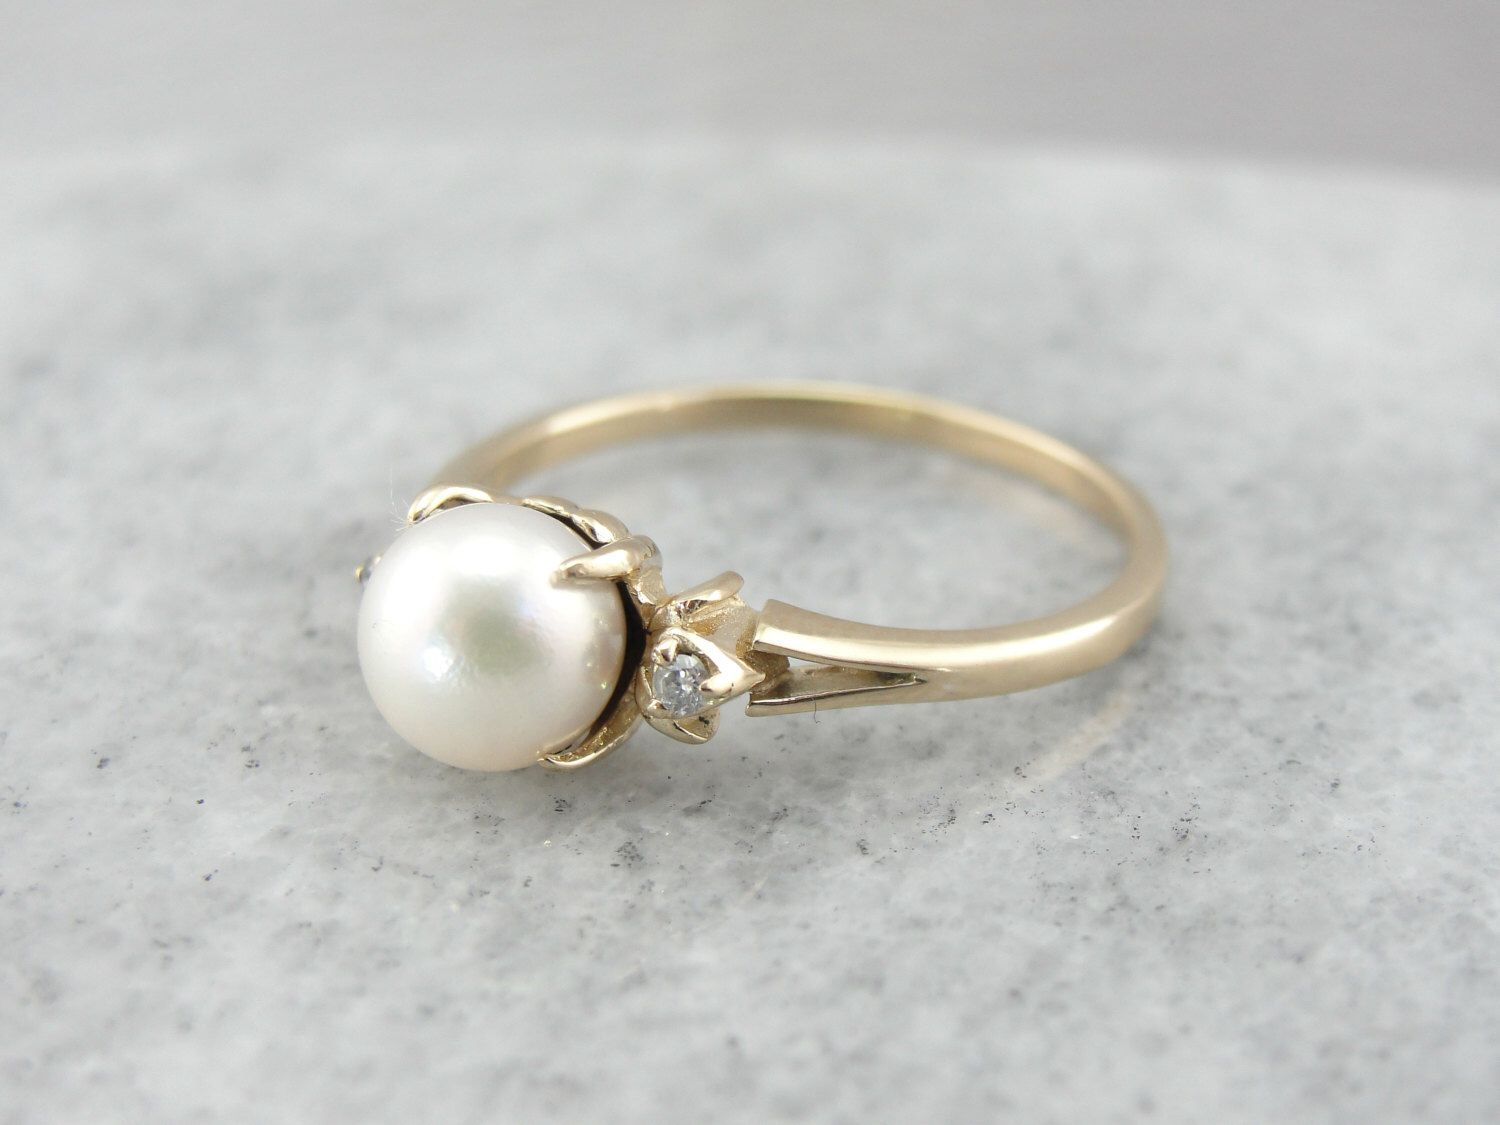 Vintage Pearl And Diamond Ring In Yellow Gold Qx8davr